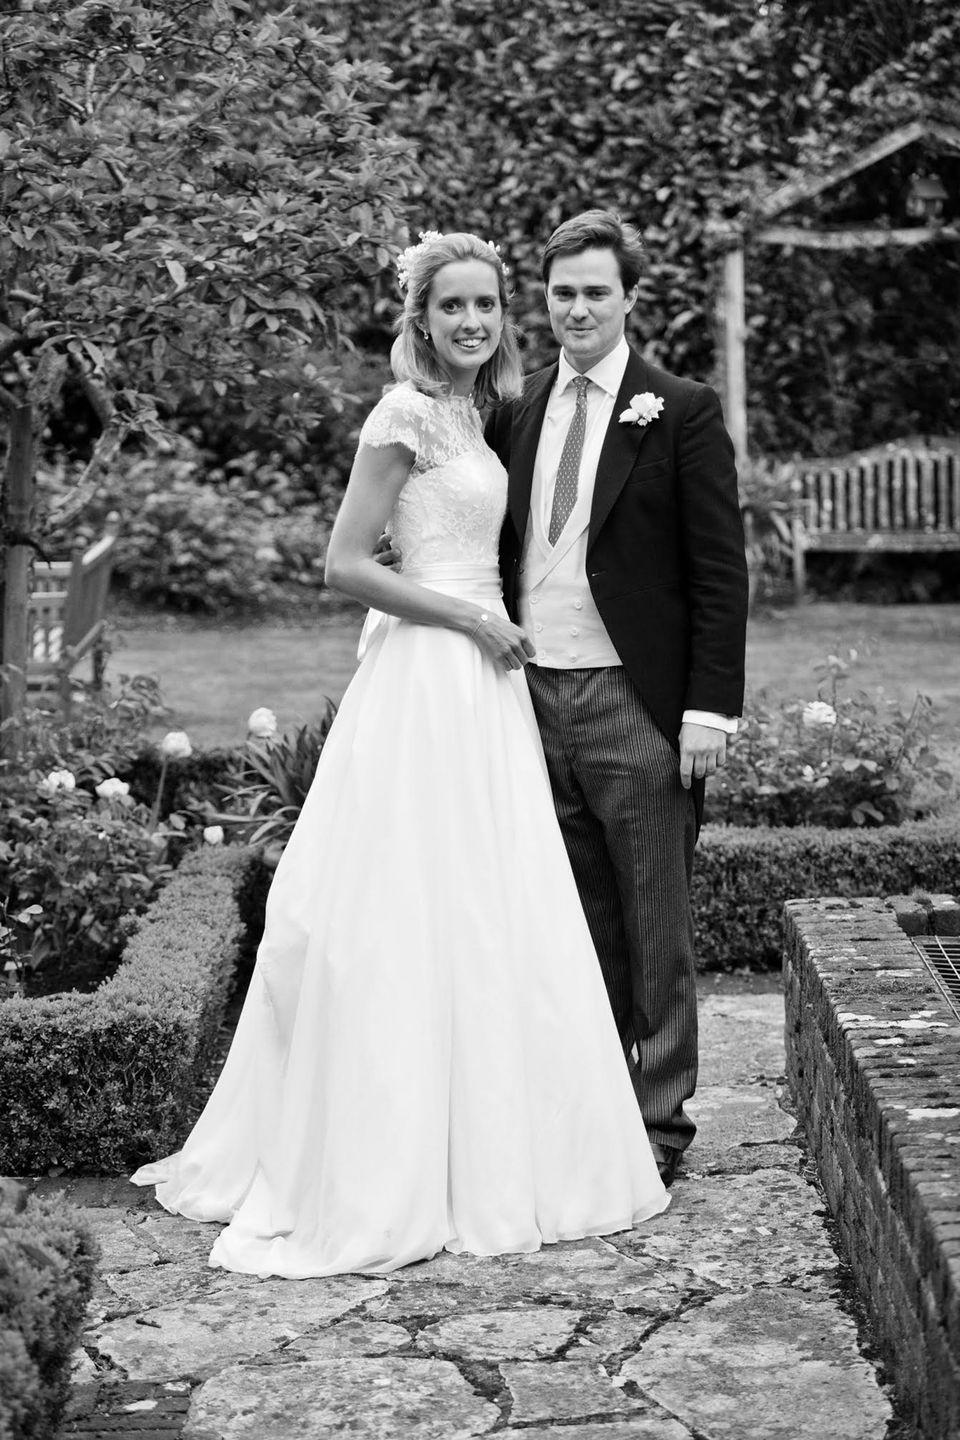 <p><strong>Wedding dress:</strong> Emma Victoria Payne</p><p><strong>Jewellery:</strong> Davina Combe</p>